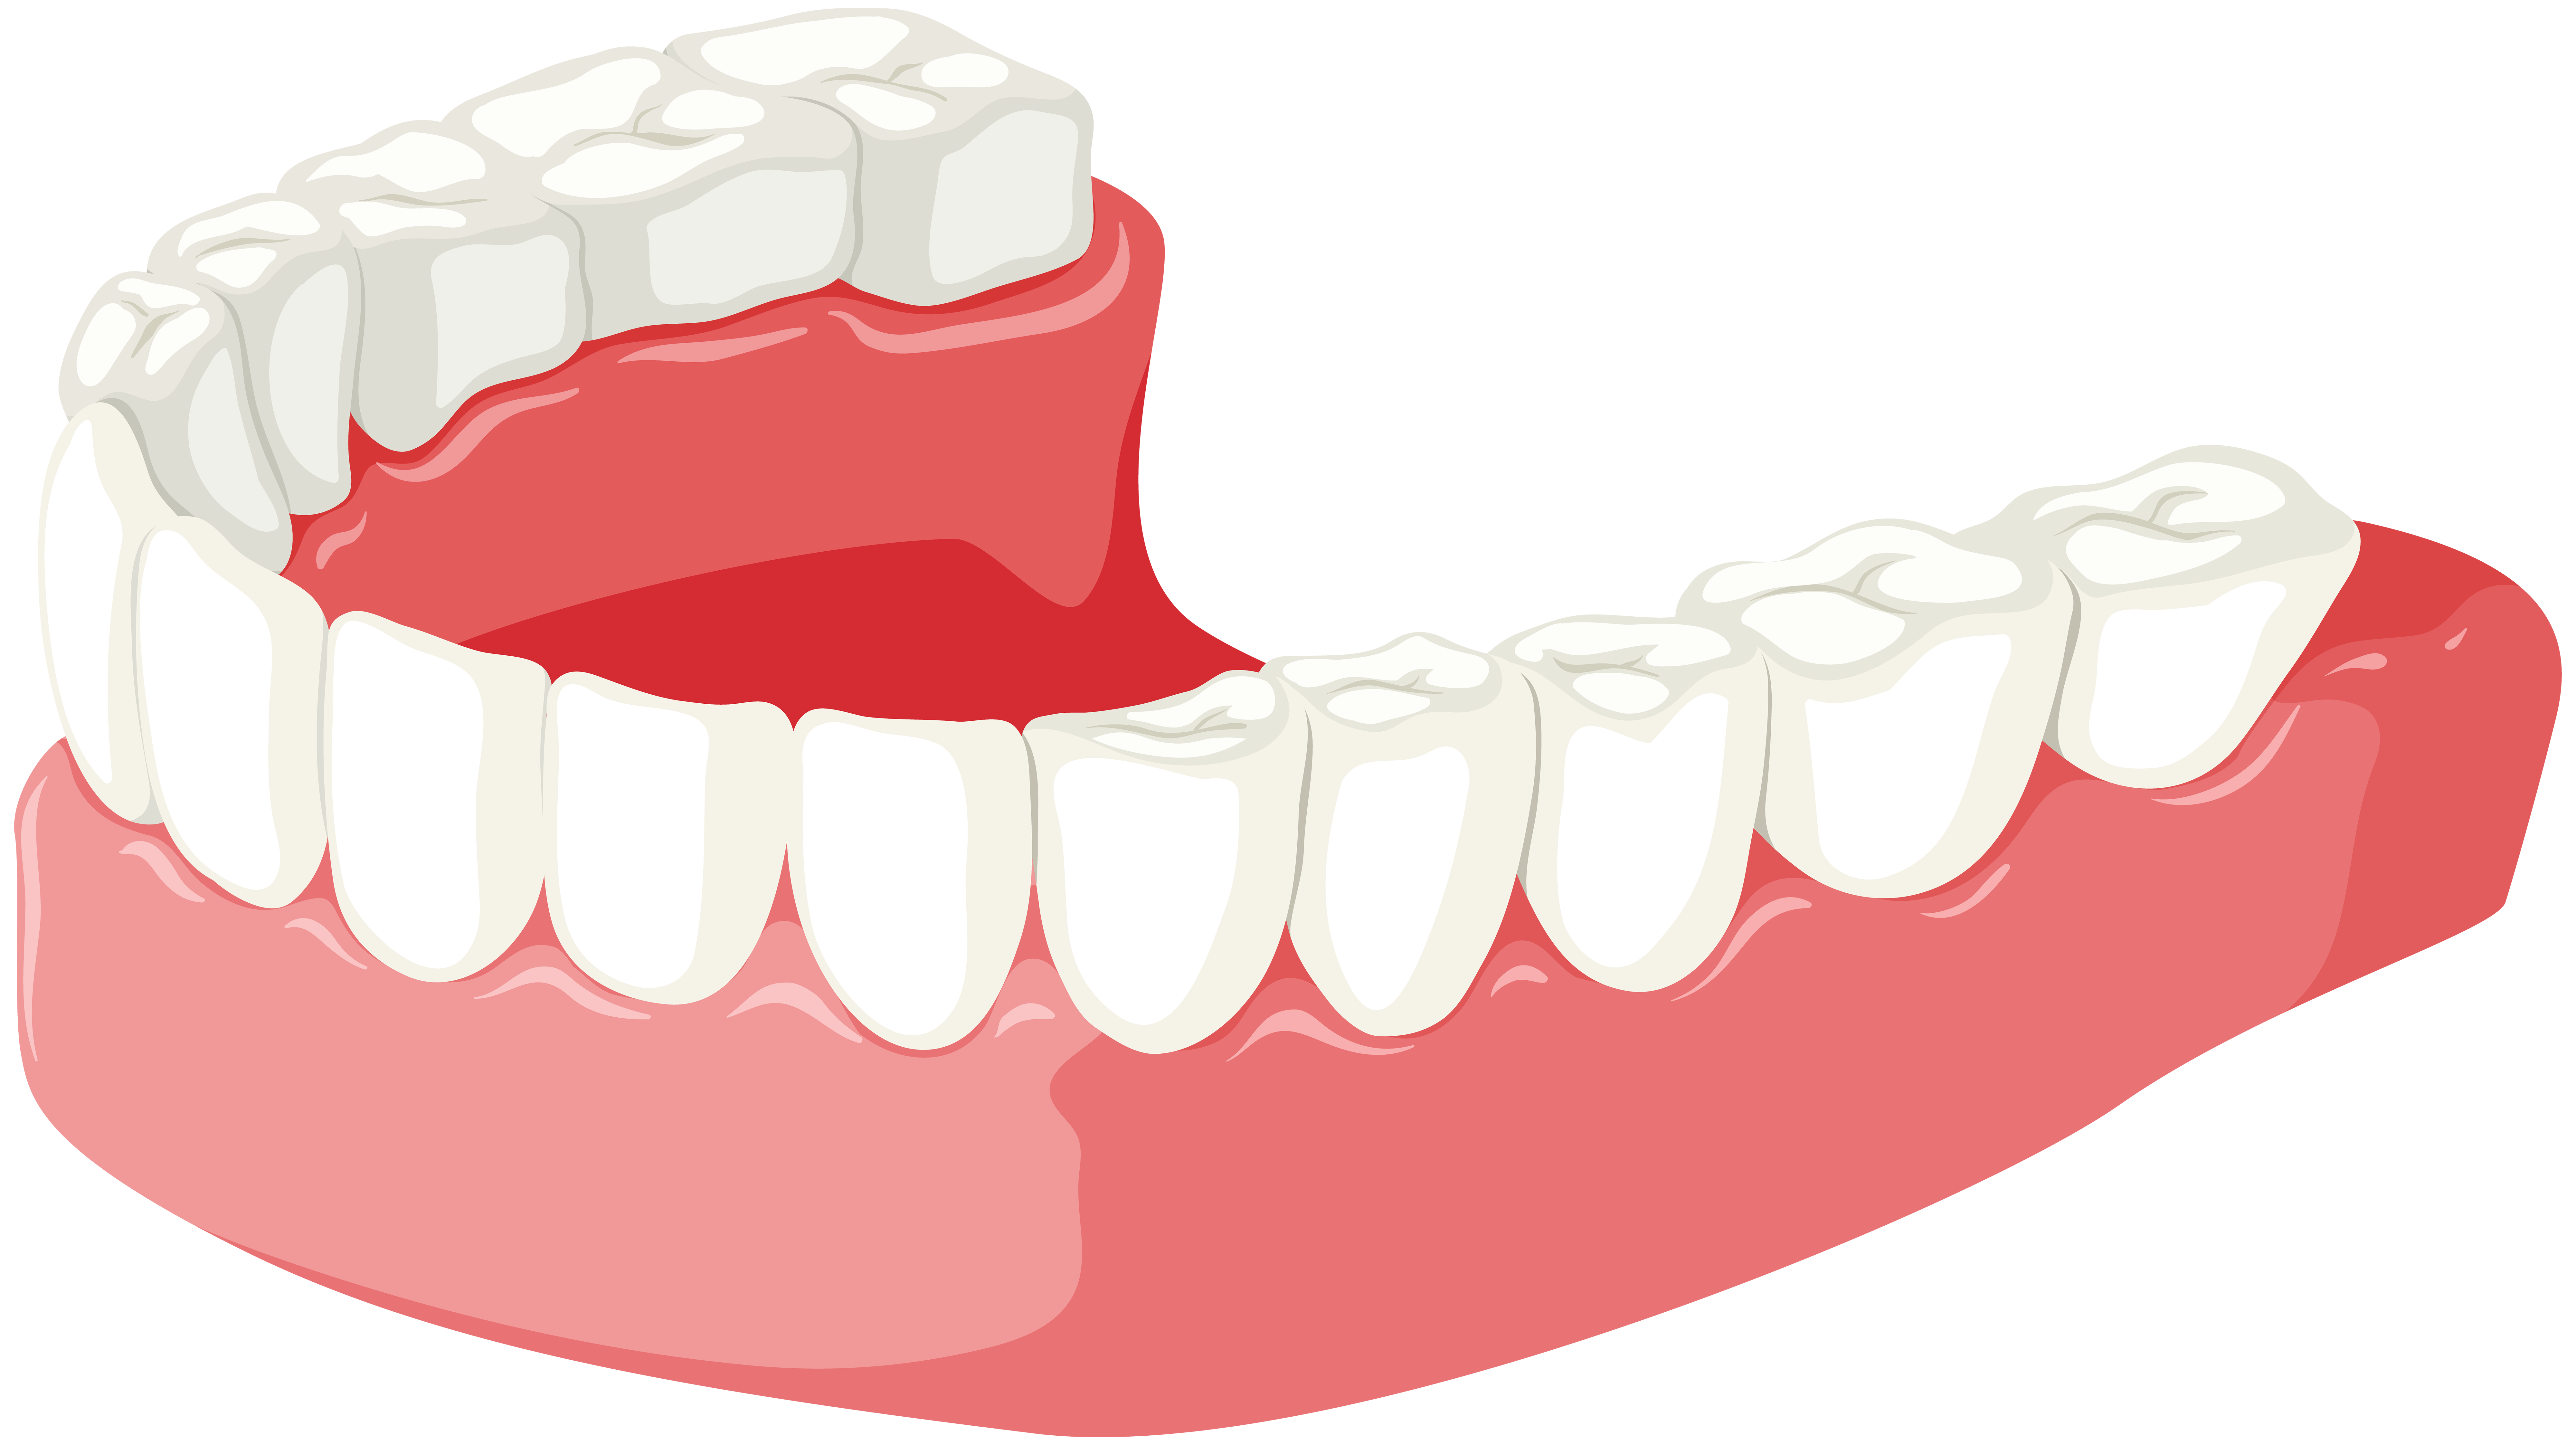 Lower jaw png clip. Dog clipart dental